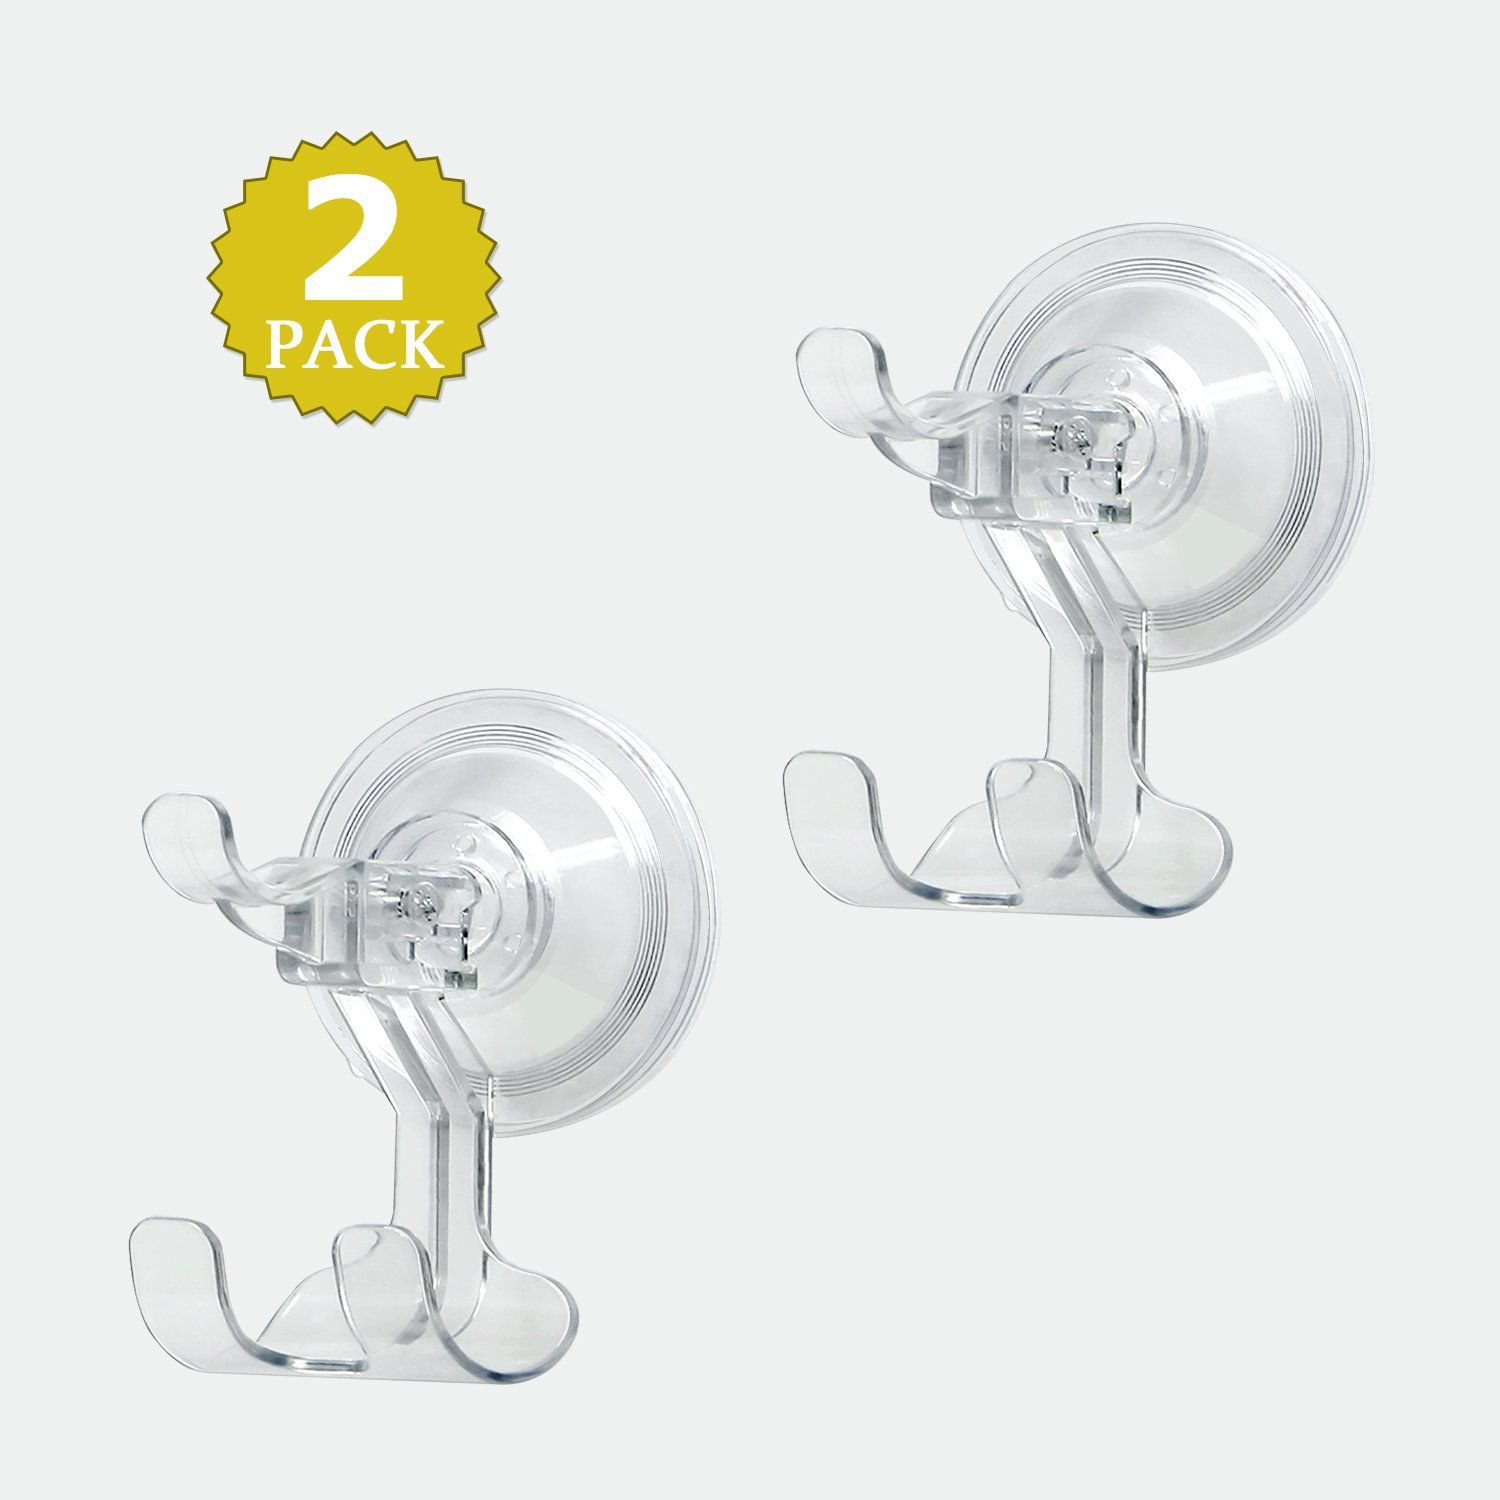 Bathroom Suction Hooks Luxear Suction Hooks Clear Plastic Vacuum Suction Cup Hooks